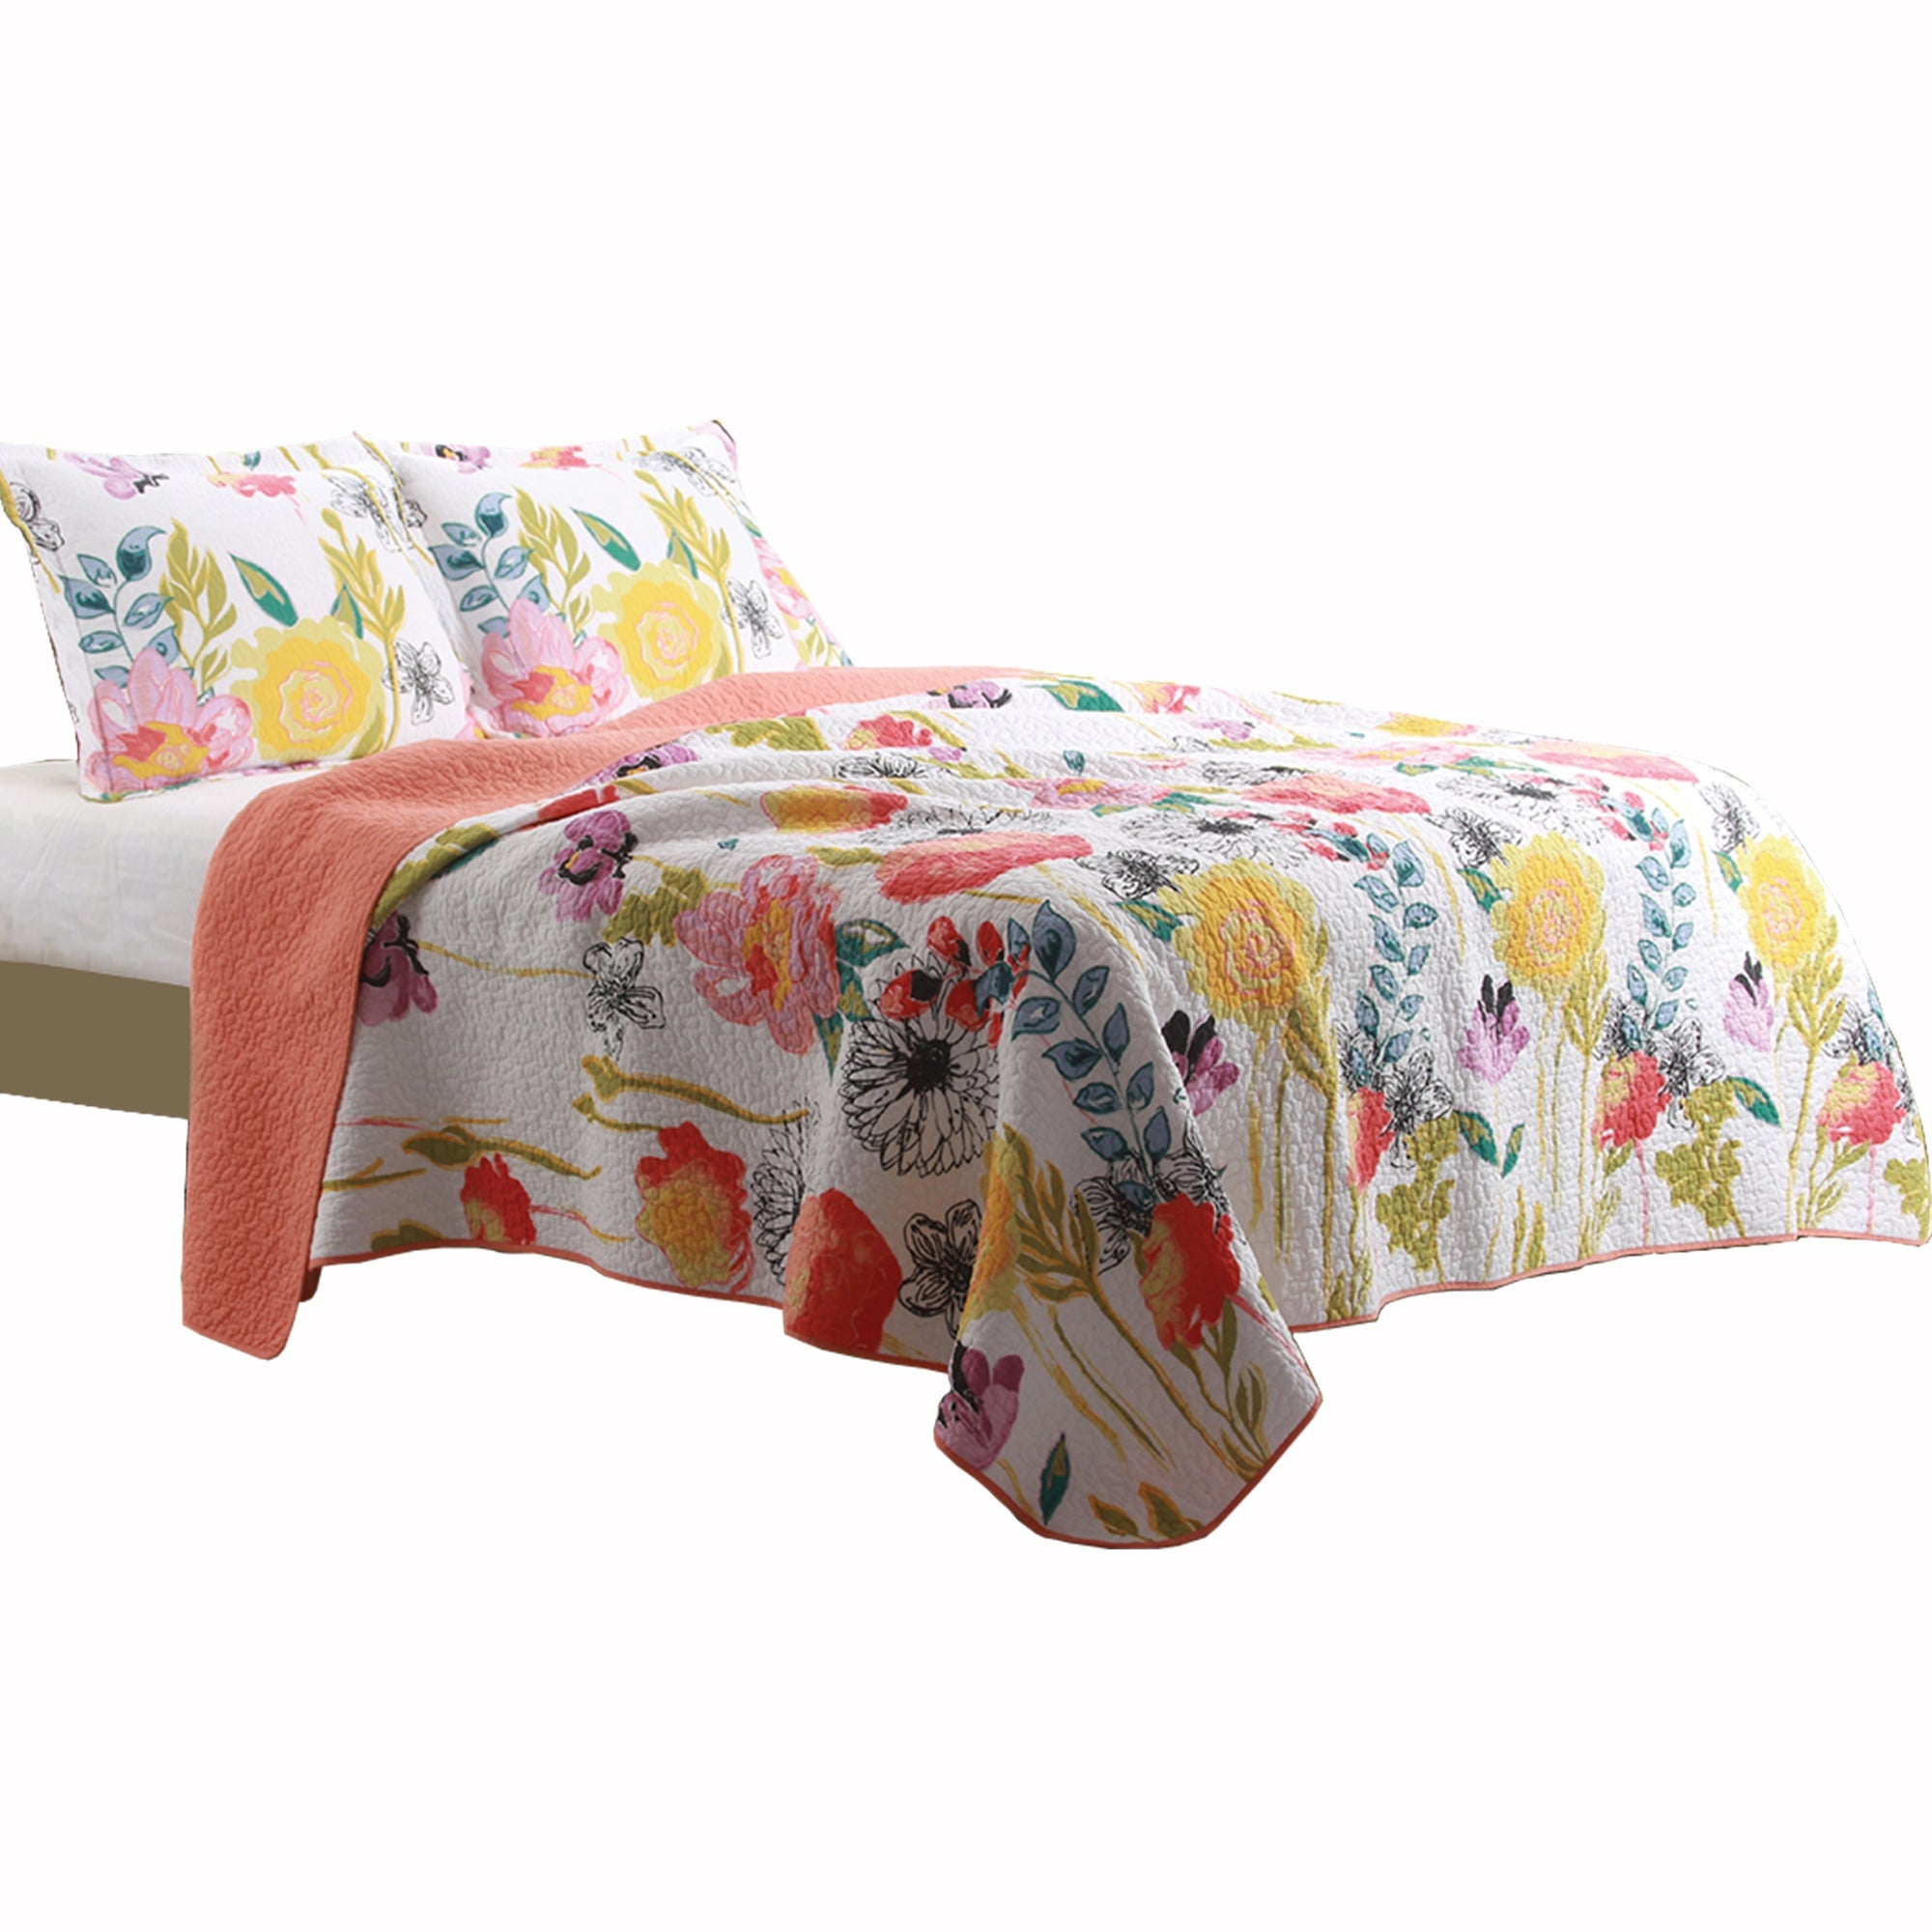 Shop Black Friday Deals On 3 Piece Cotton King Size Quilt Set With Stencil Flower Print Multicolor On Sale Overstock 31763195